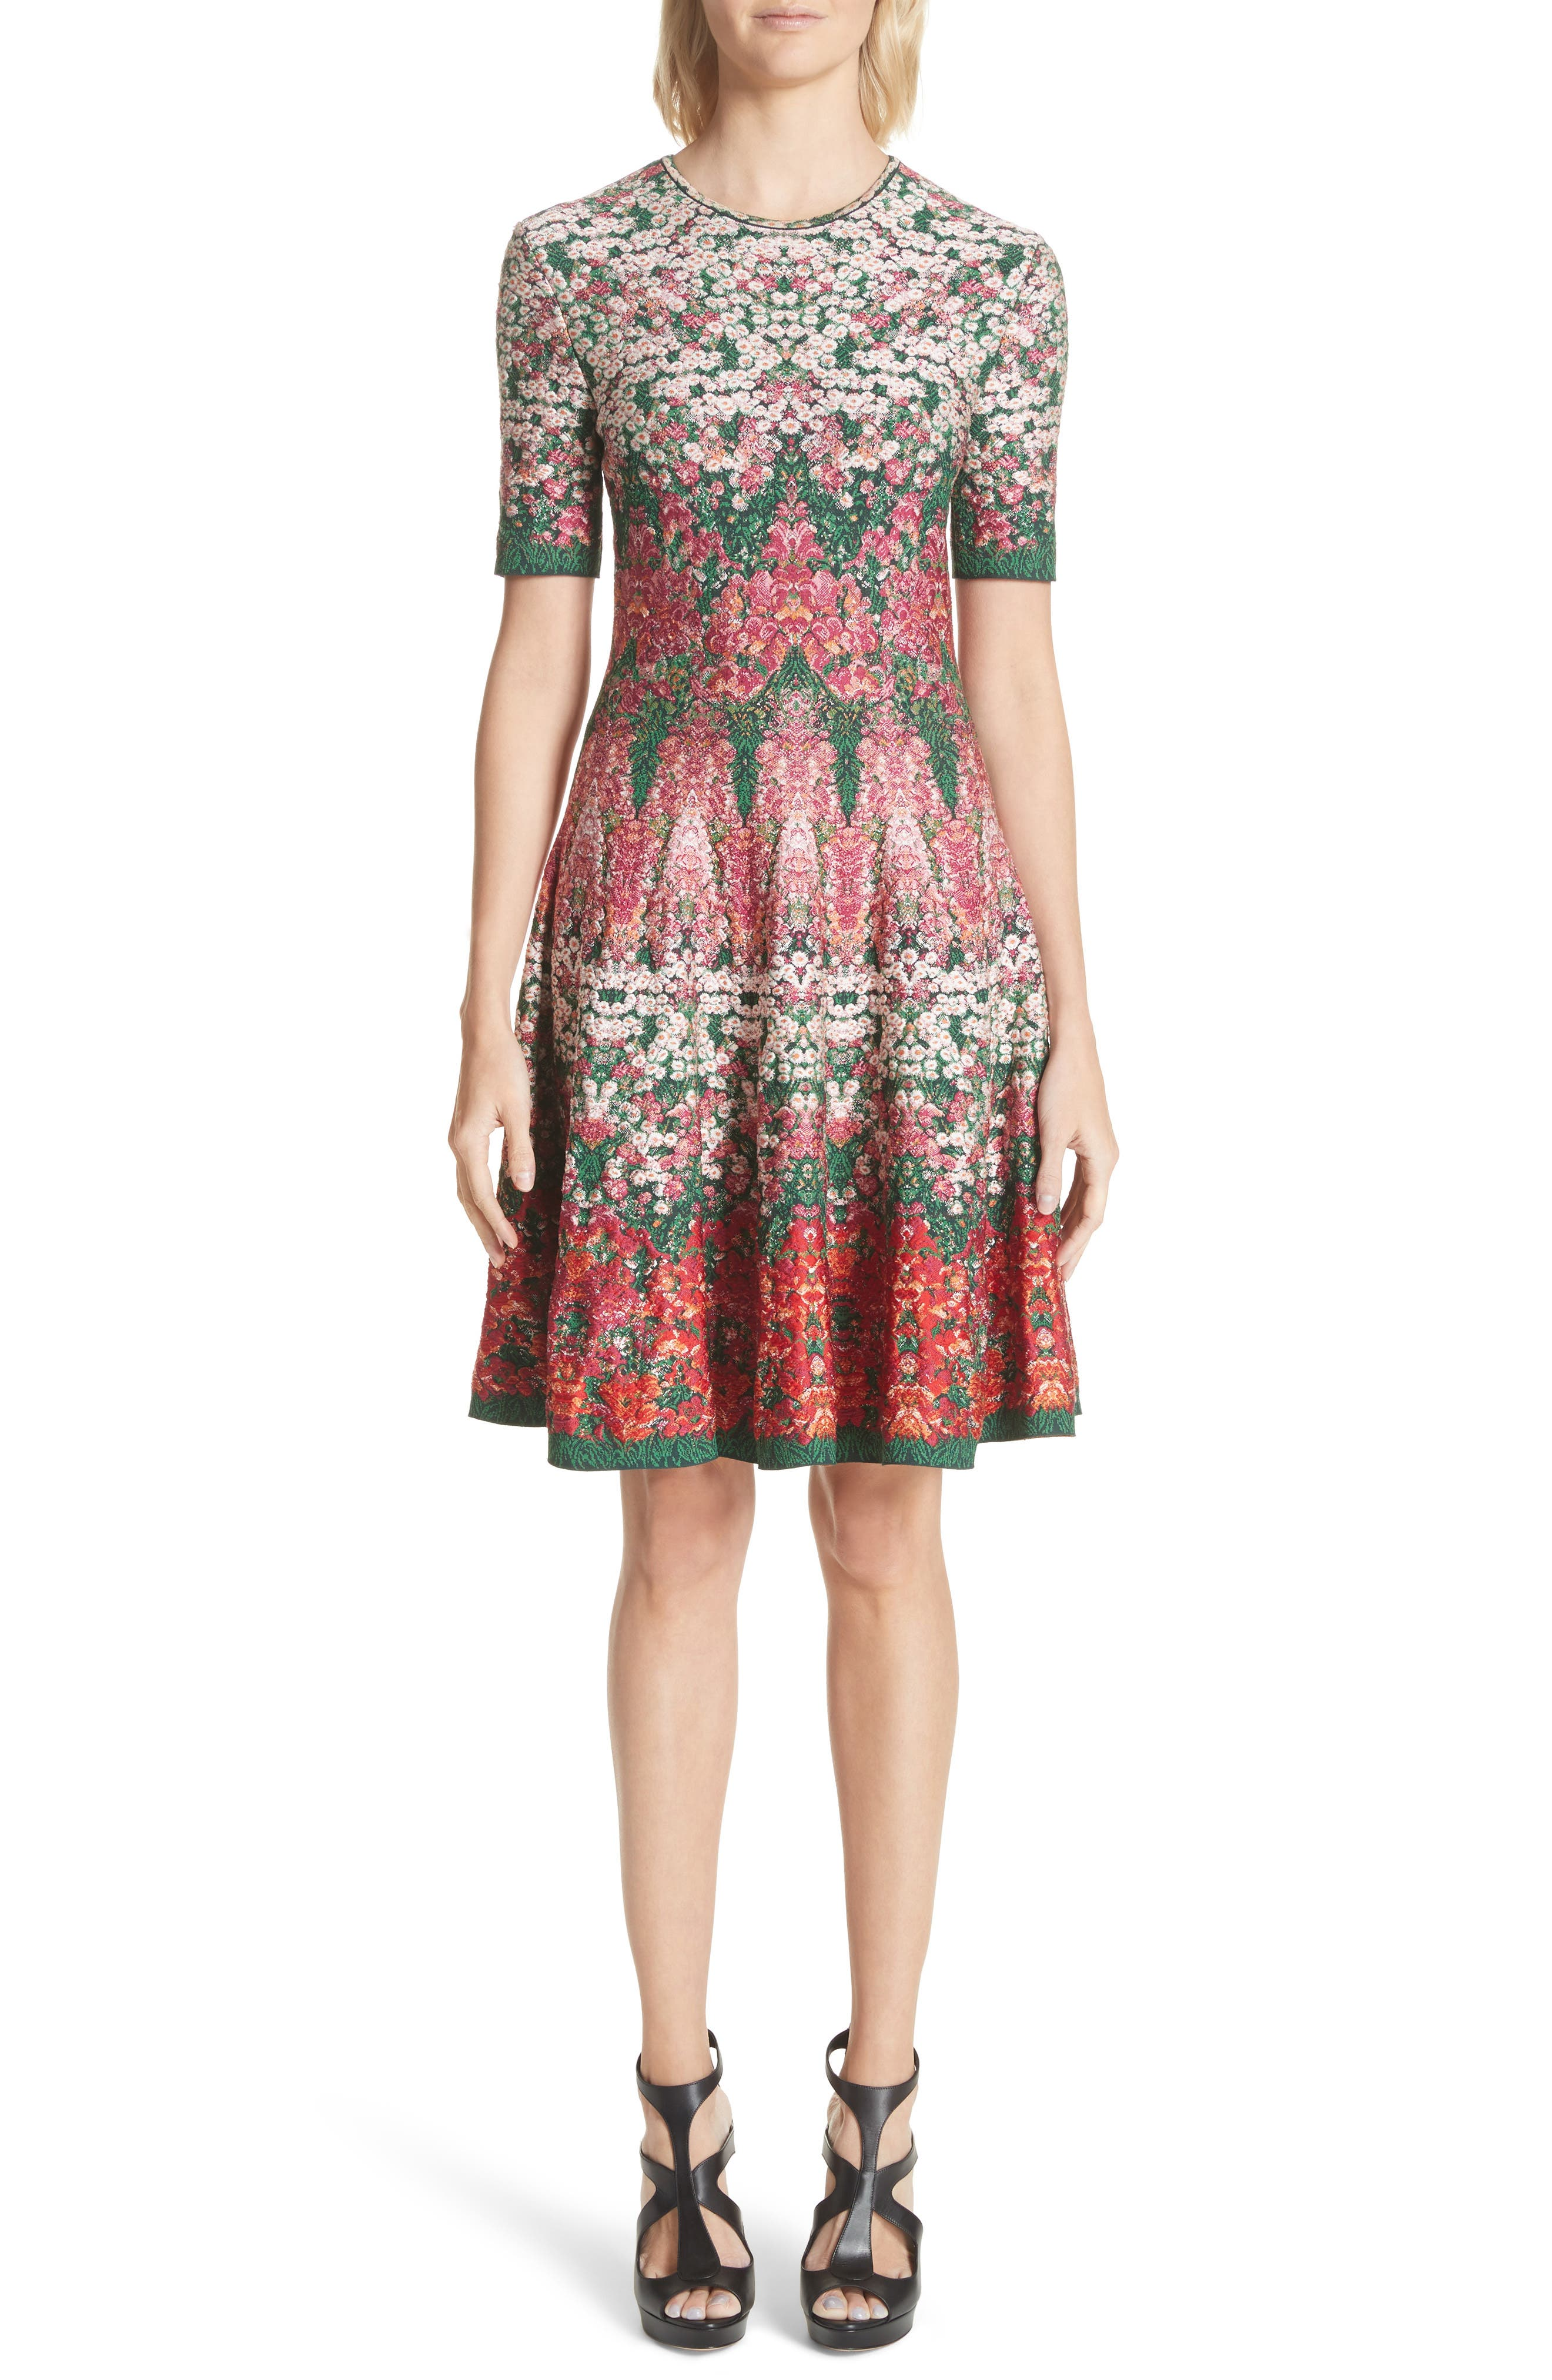 Alexander McQueen Floral Jacquard Knit Fit & Flare Dress